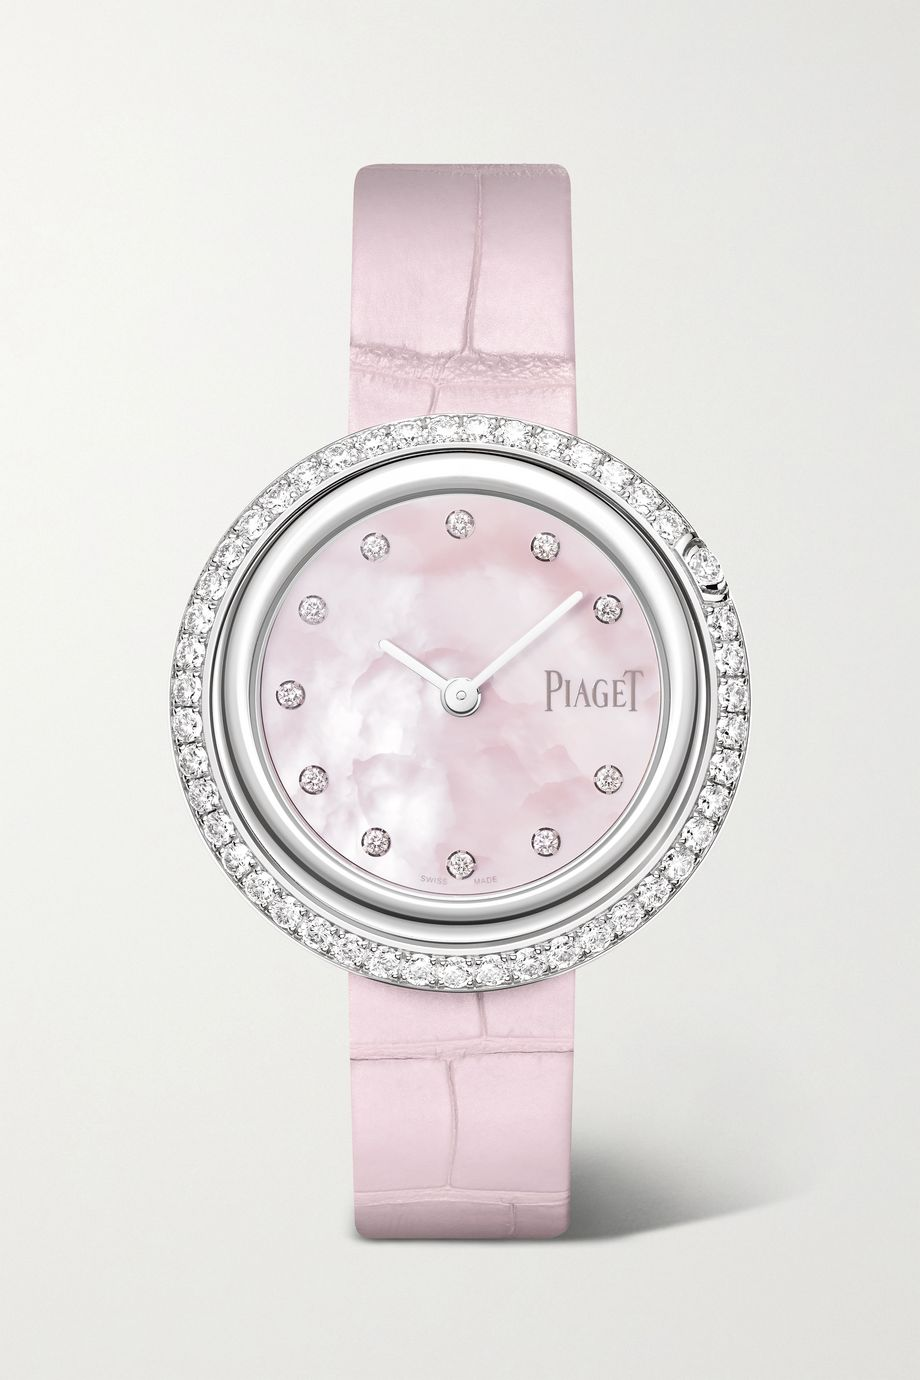 Piaget Montre en or blanc 18 carats et diamants à bracelet en alligator Possession 34 mm